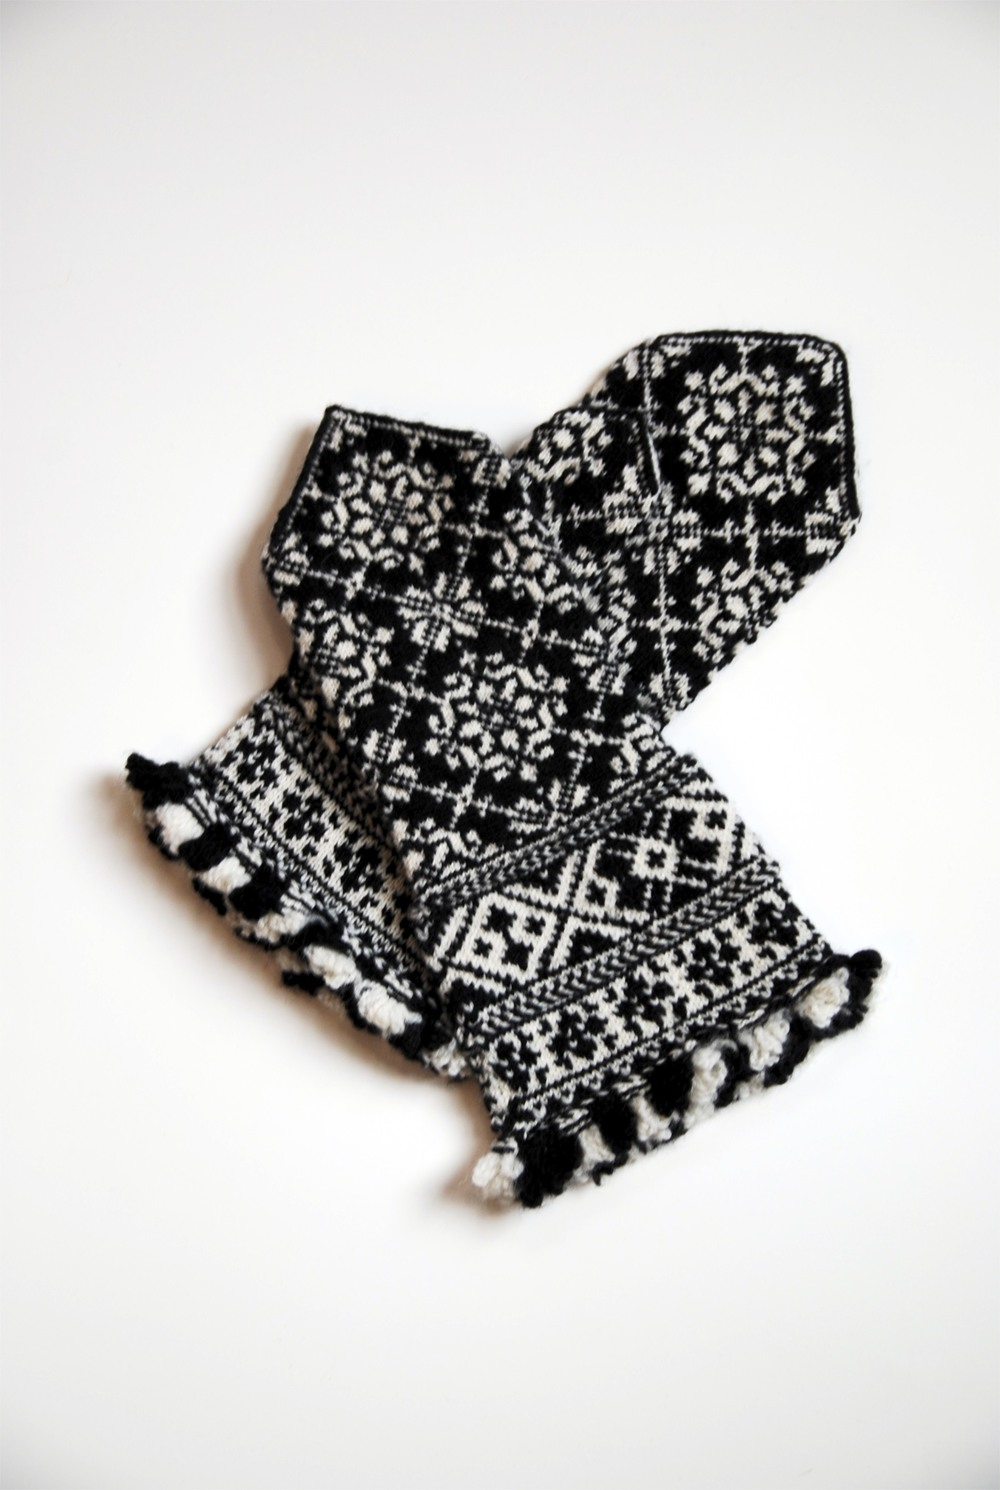 Latvian mittens, designed by Liz Upitis, knit by me